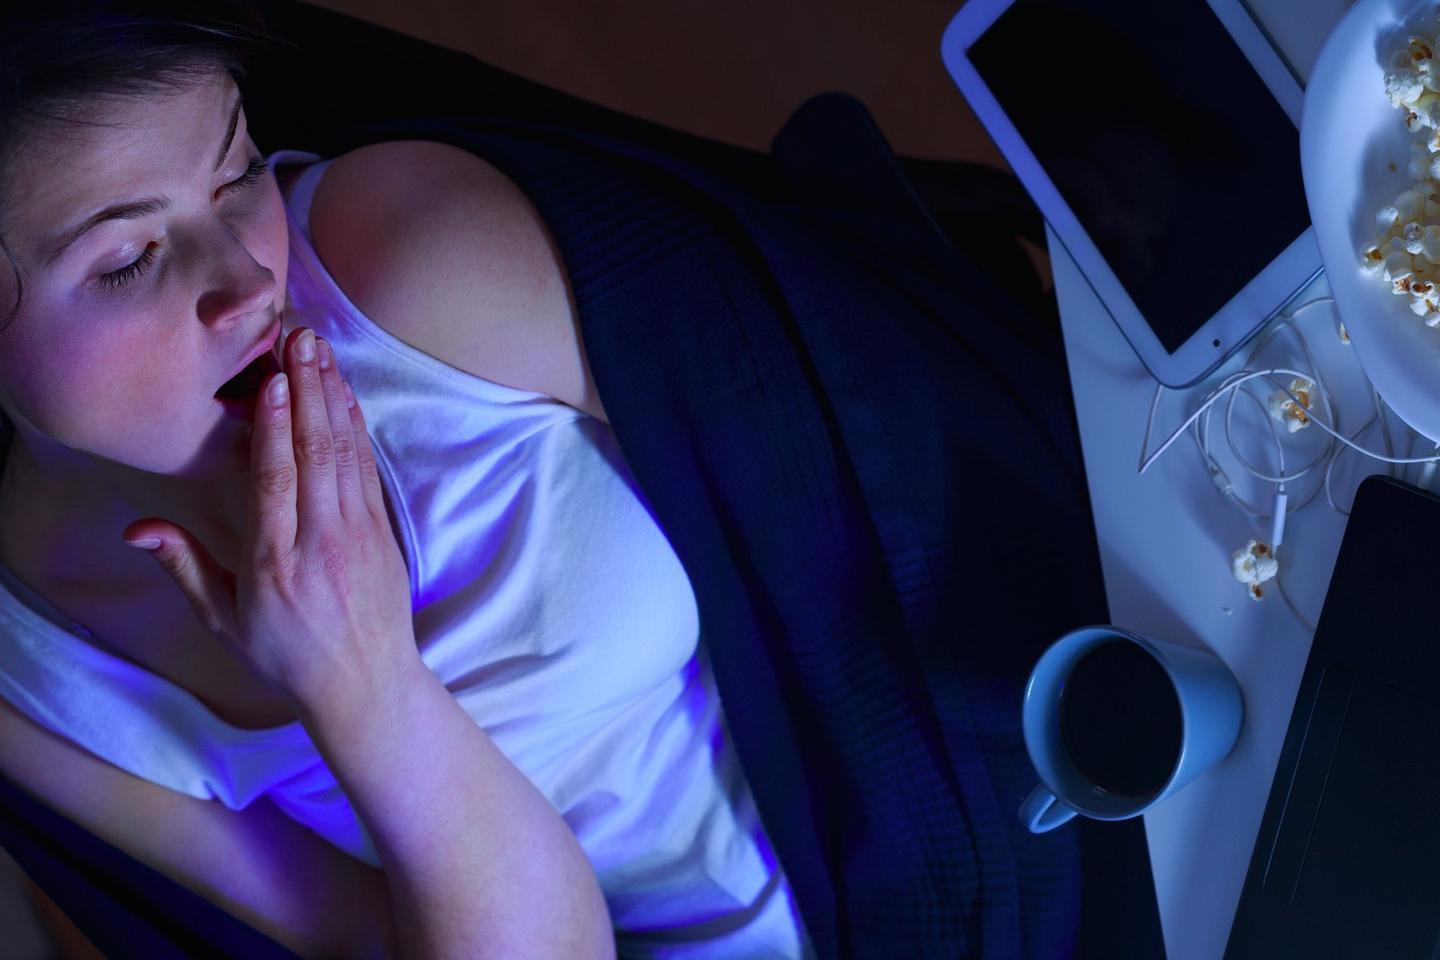 Social media and sleep don't mix, according to a recent study